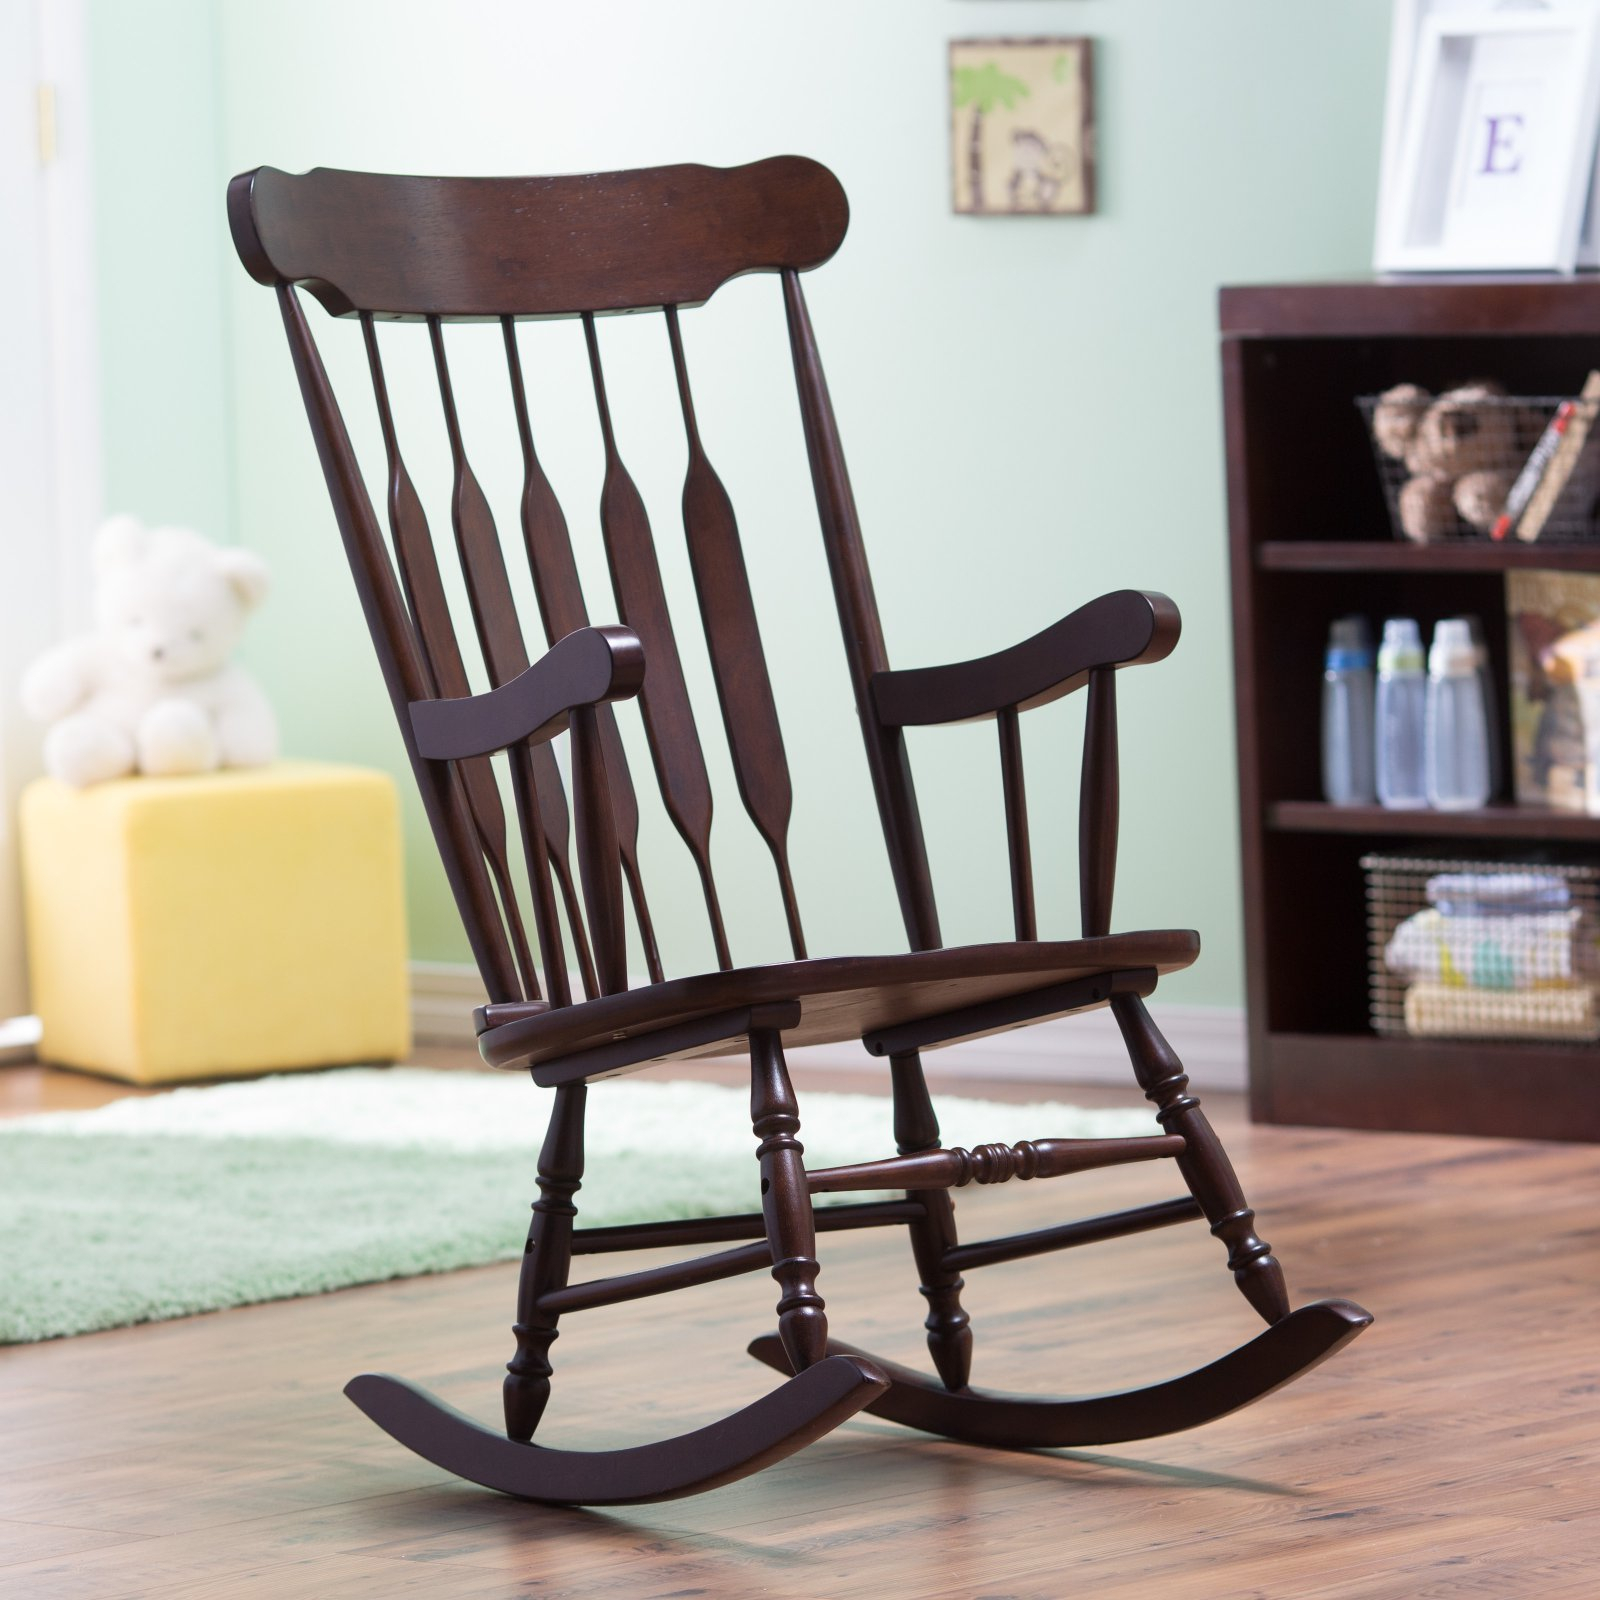 """Belham Living Wood Nursery Rocker €"""" Espresso In 2019 Intended For Madrone Windsor Country Style Rocking Chairs (#3 of 20)"""